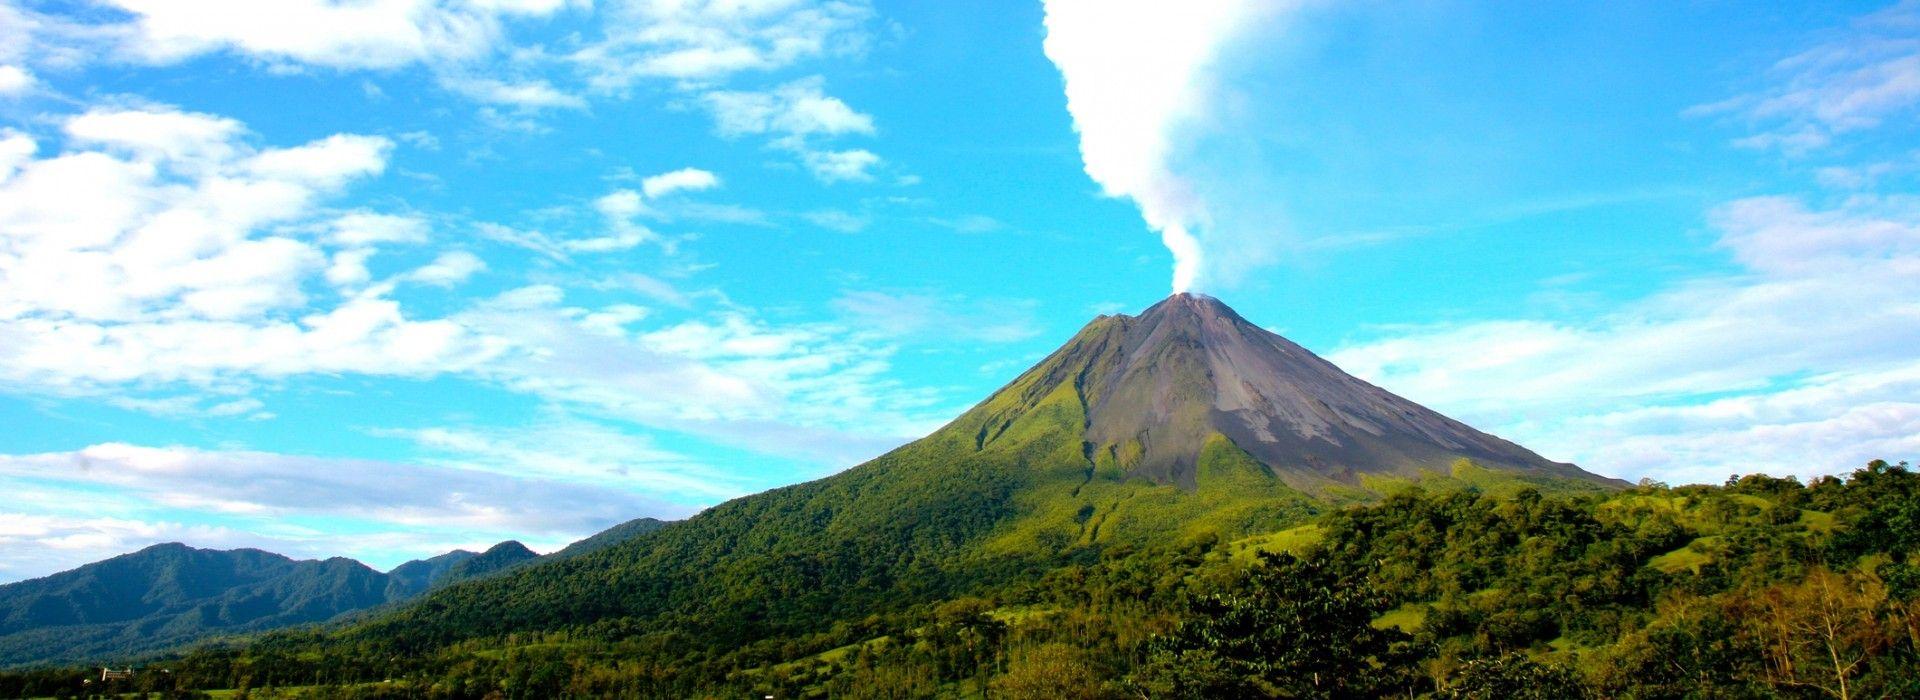 Sightseeing Tours in Costa Rica